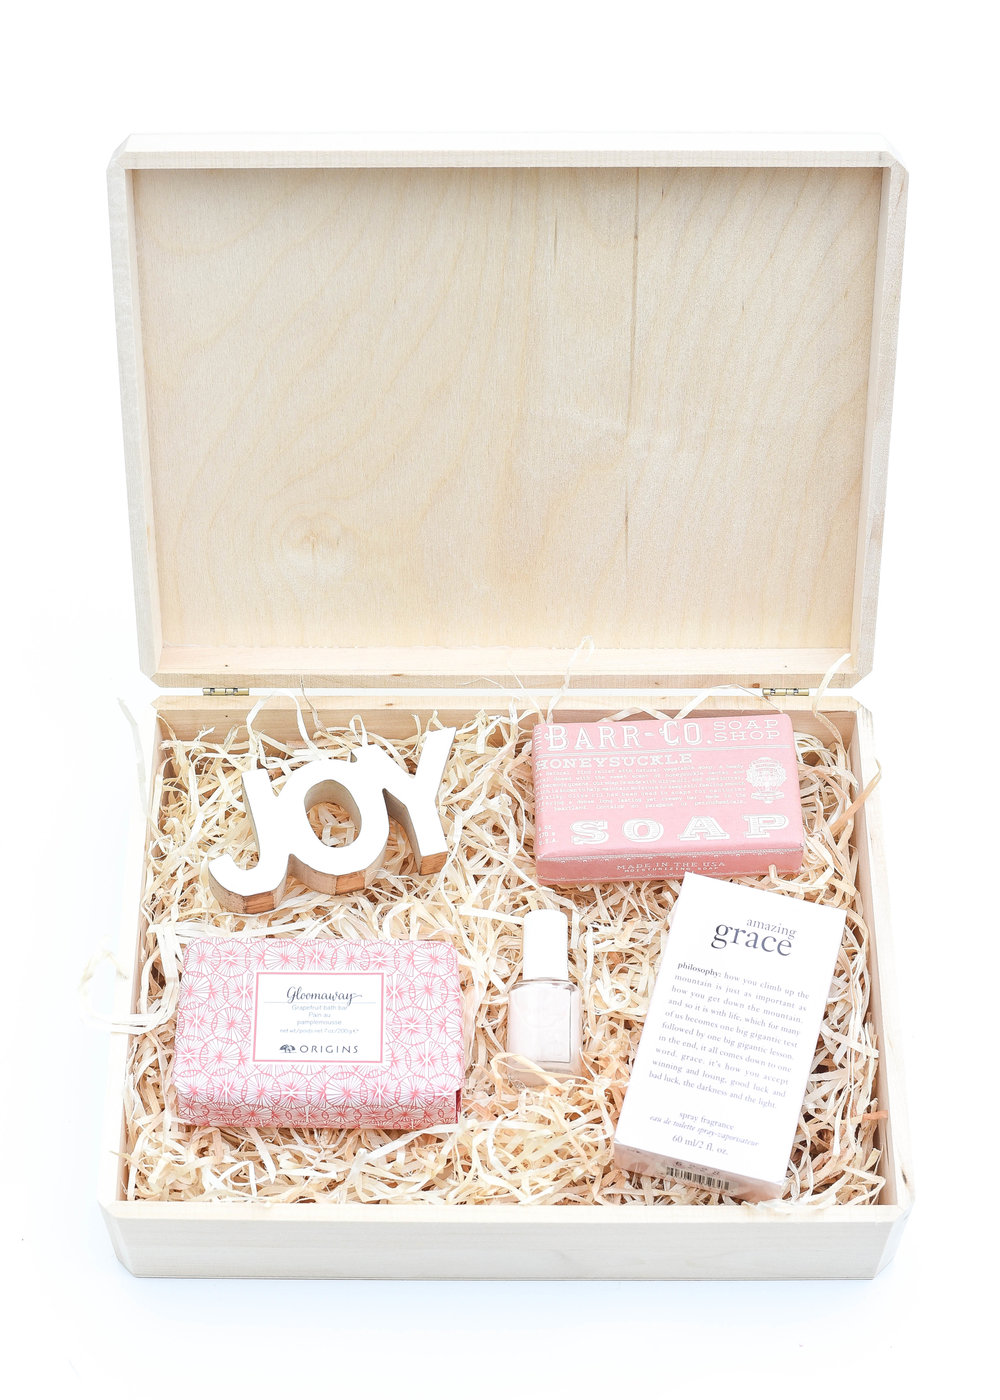 For Her | Bath & Fragrance - L:R | JOY (in store @ Target) | Honeysuckle Bar Soap | Grapefruit Bar Soap | Nail Polish | Amazing Grace Fragrance |